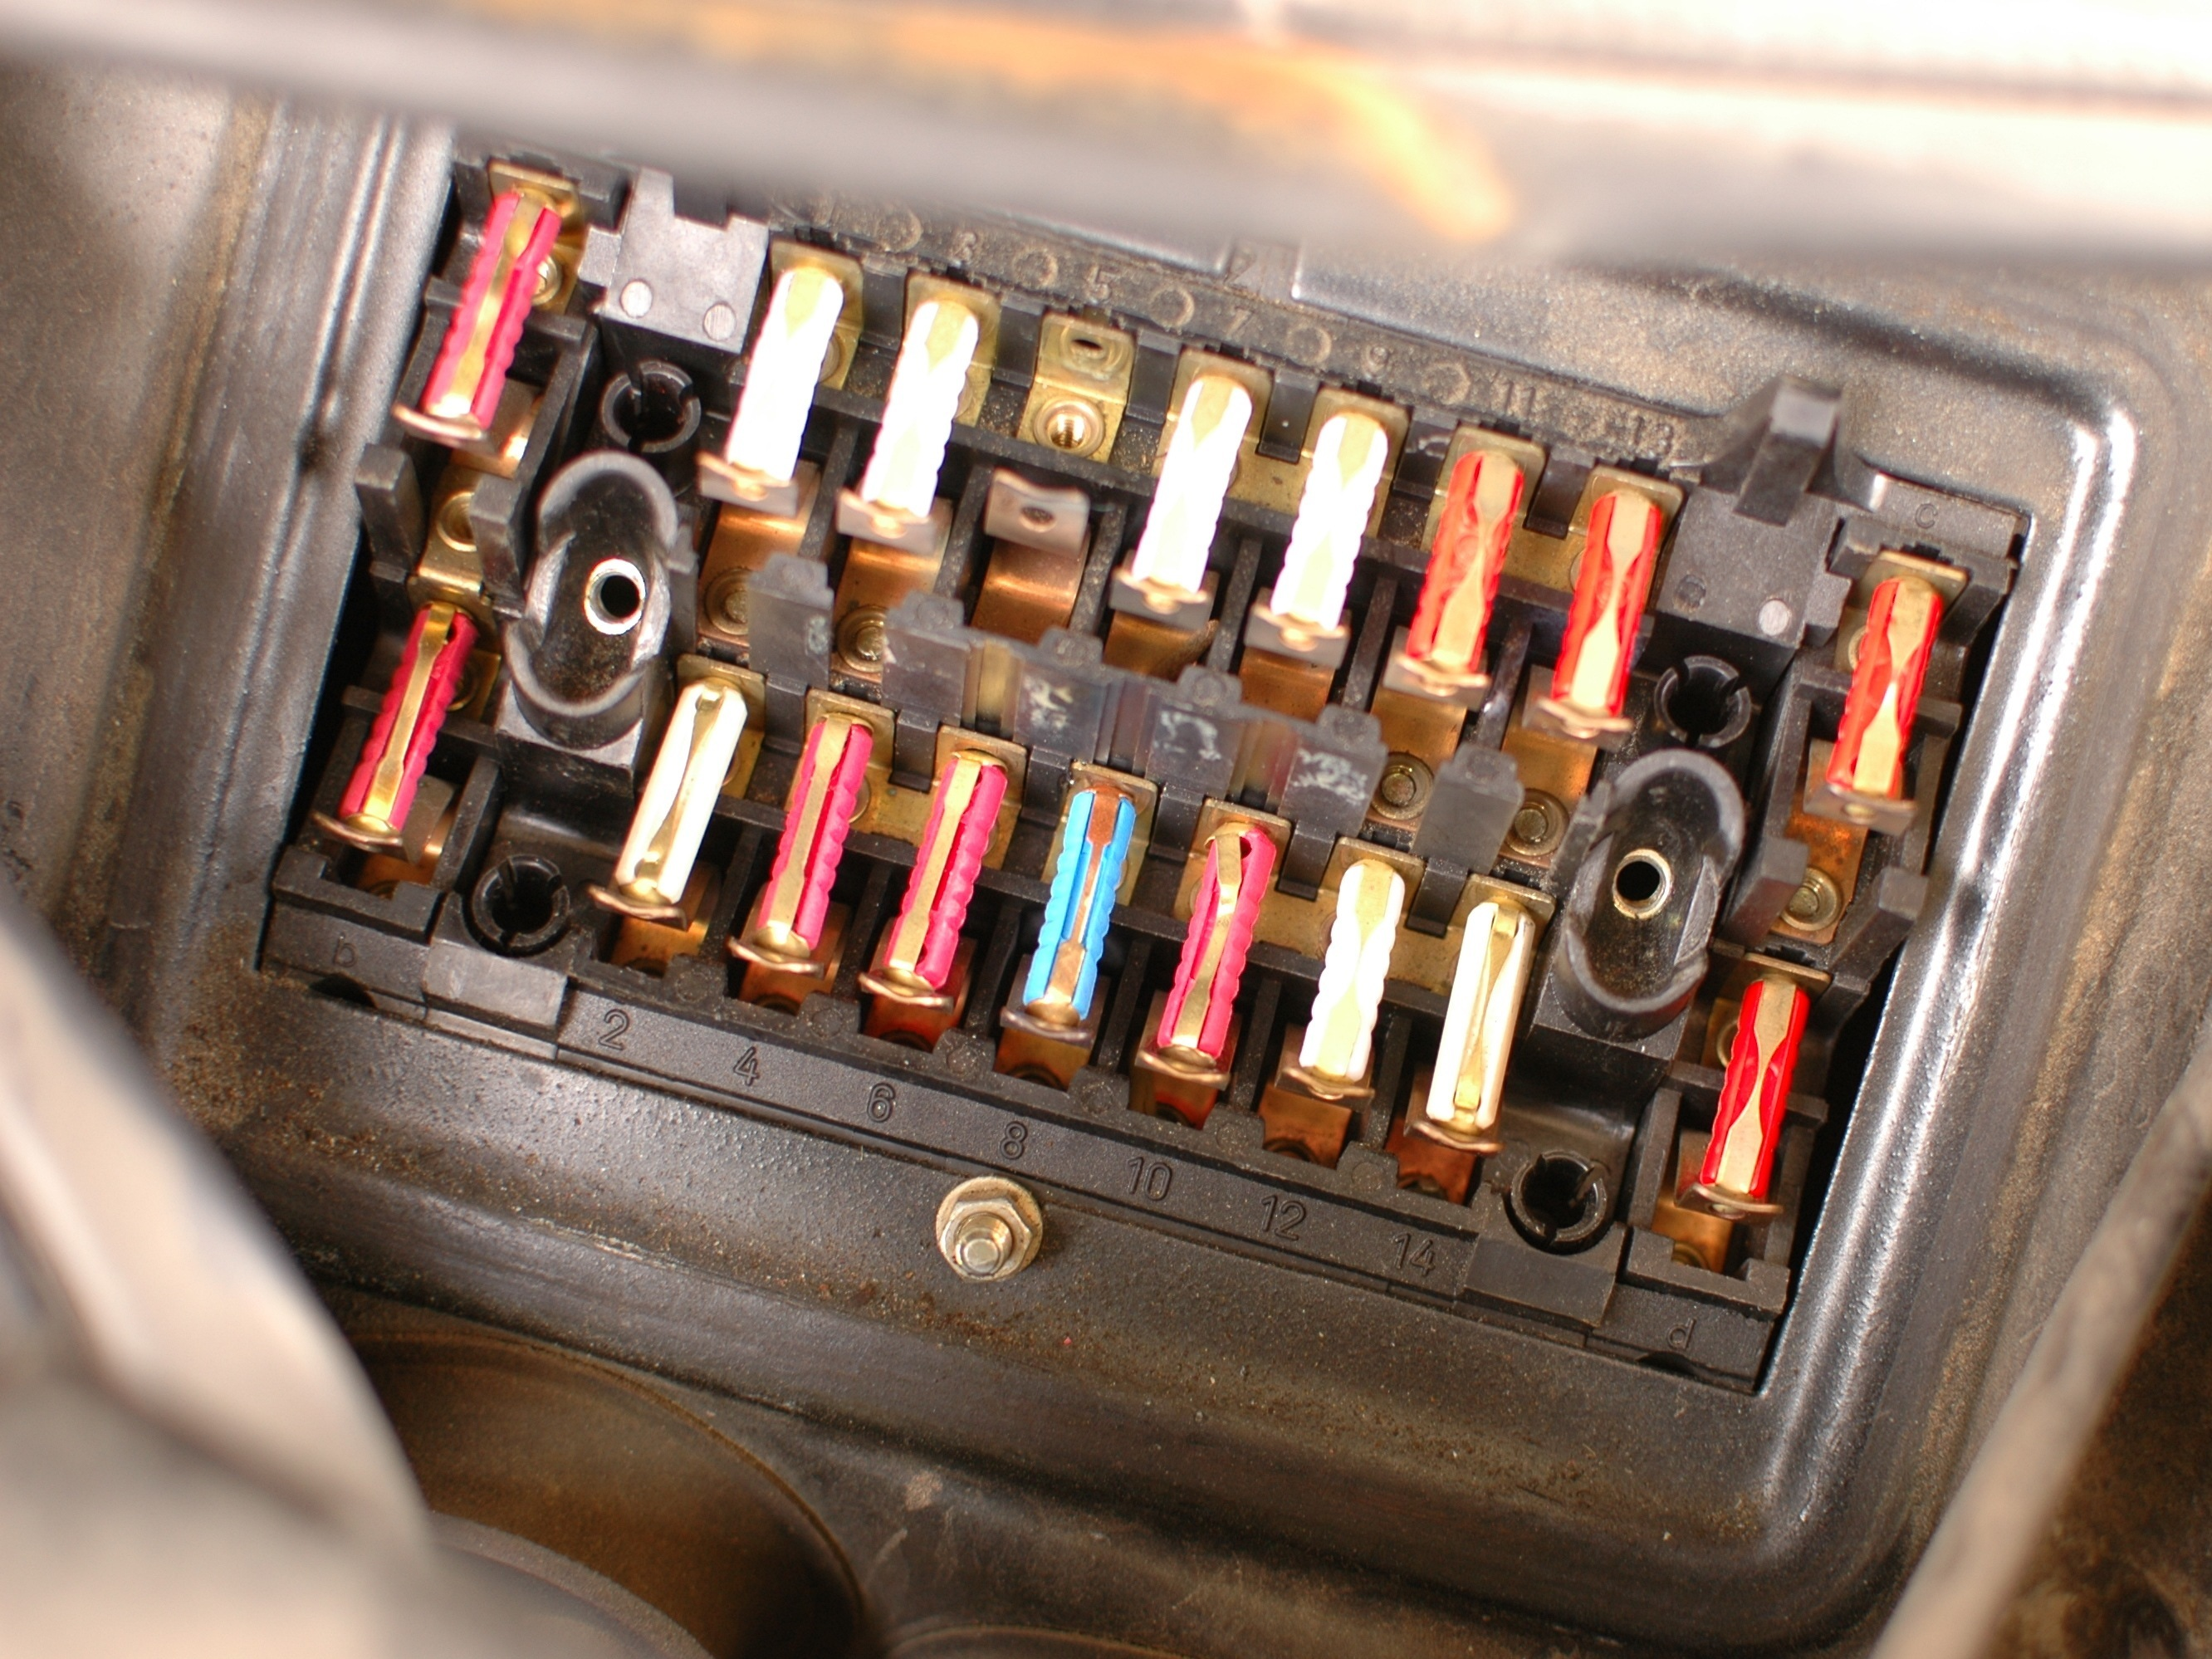 AfYAfmoCaMTVU2ap how to check mercedes w123 fuses ifixit 1978 Mercedes 450SEL at crackthecode.co